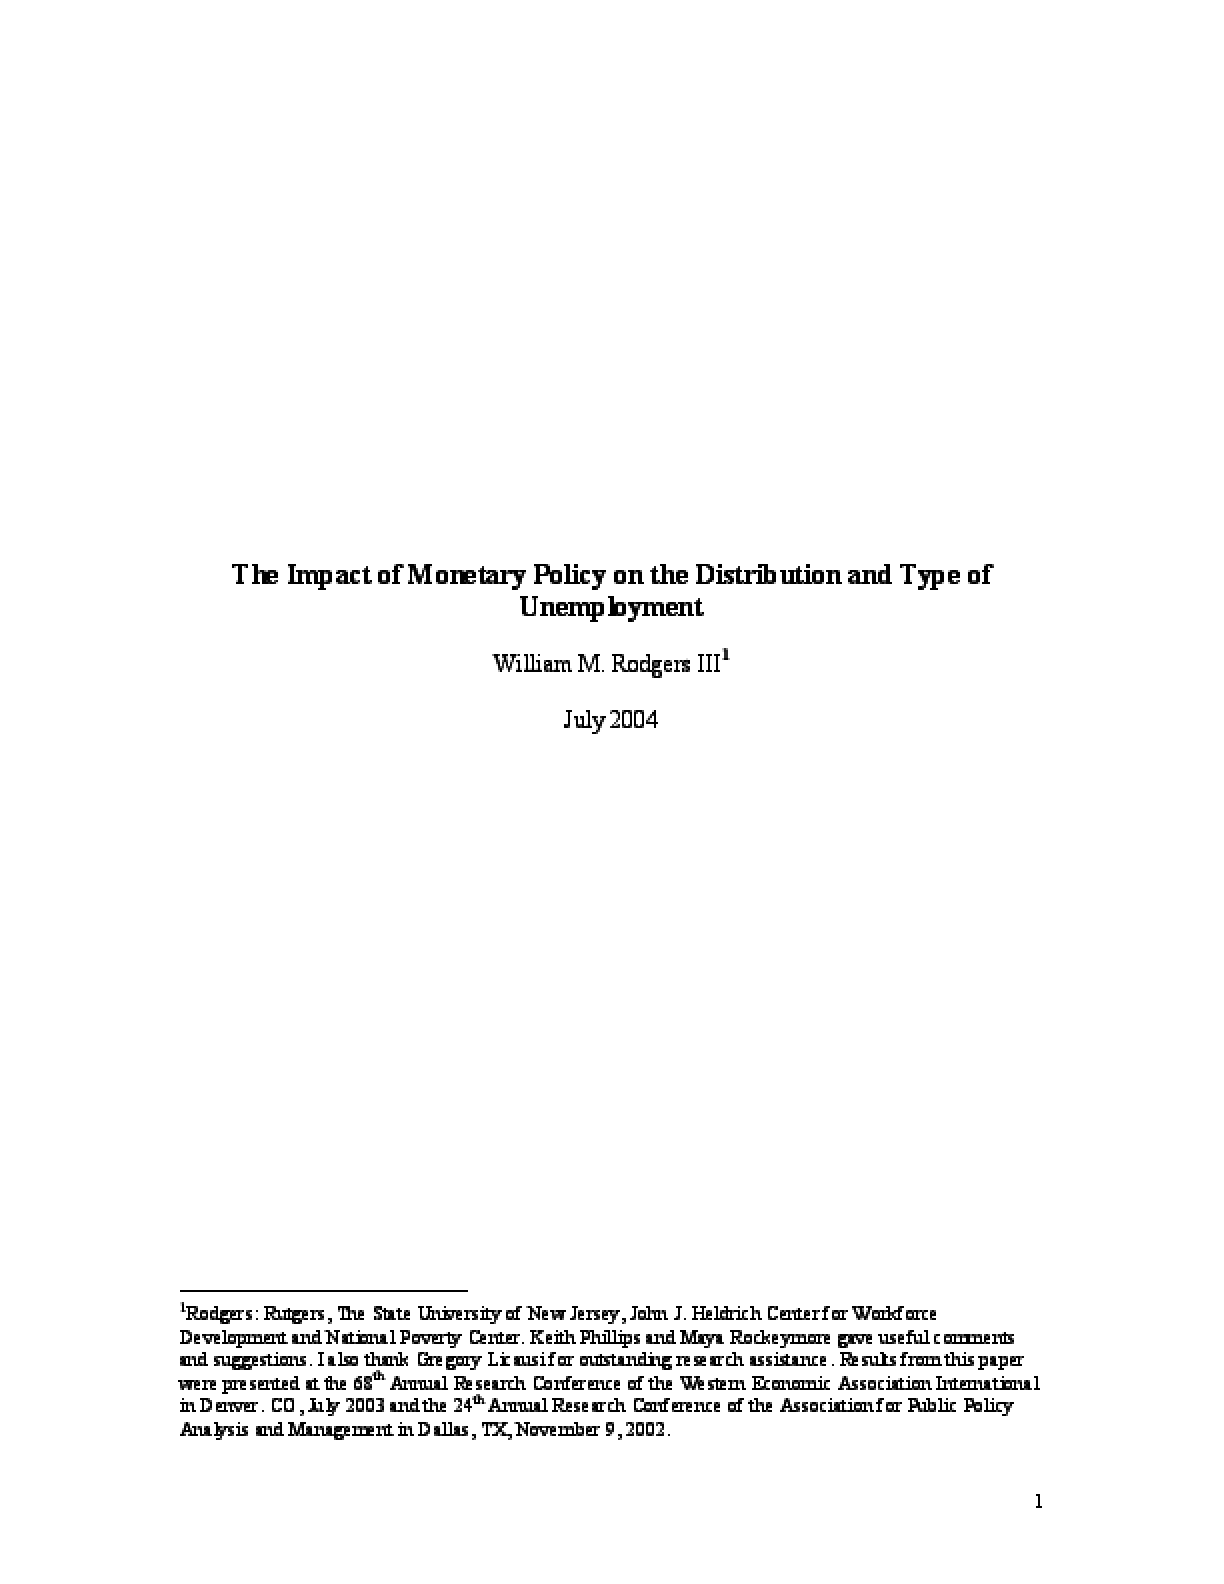 The Impact of Monetary Policy on the Distribution and Type of Unemployment